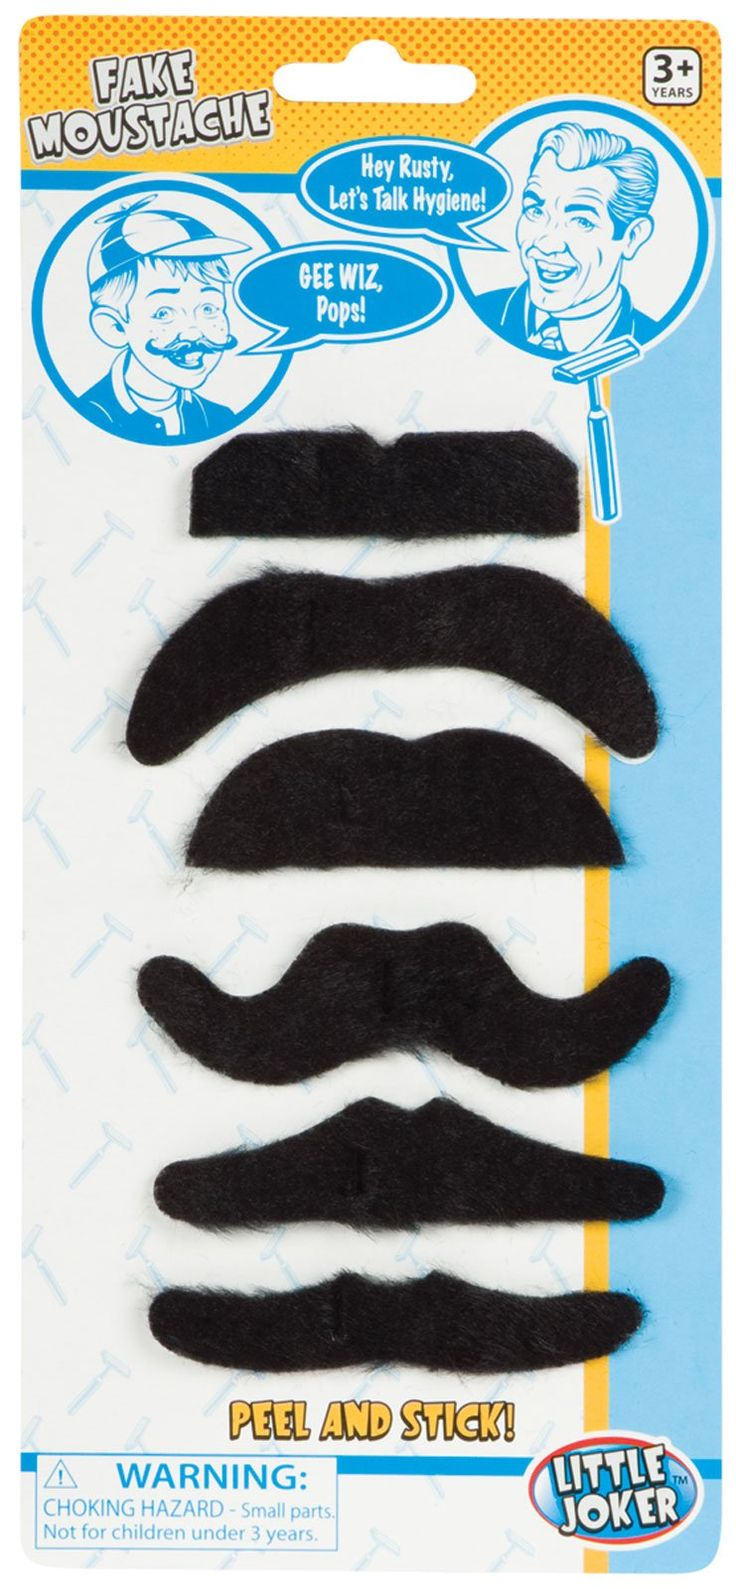 Fake Moustaches, 84135